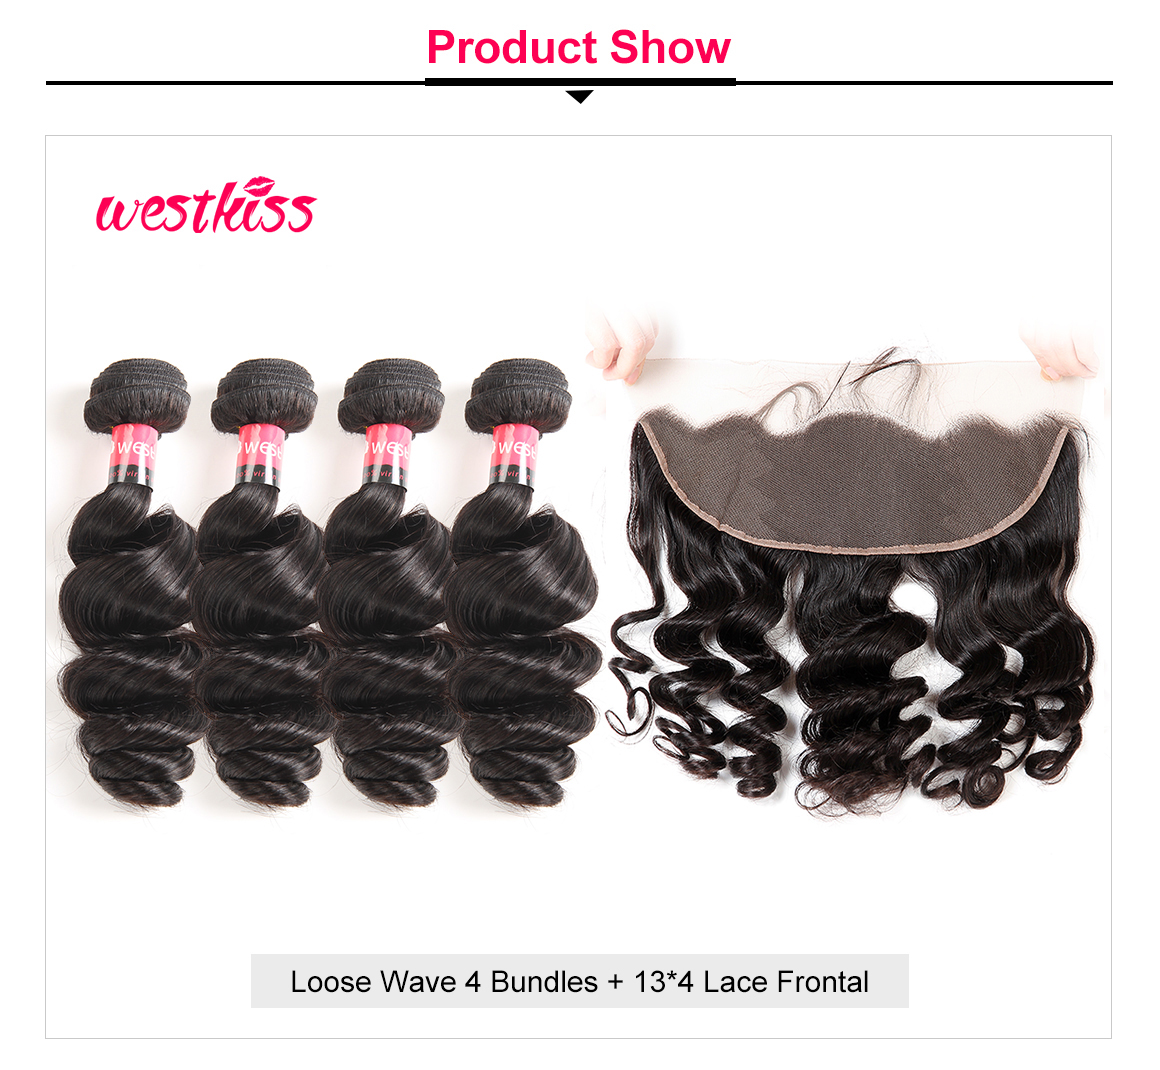 Loose Wave 4 Bundles